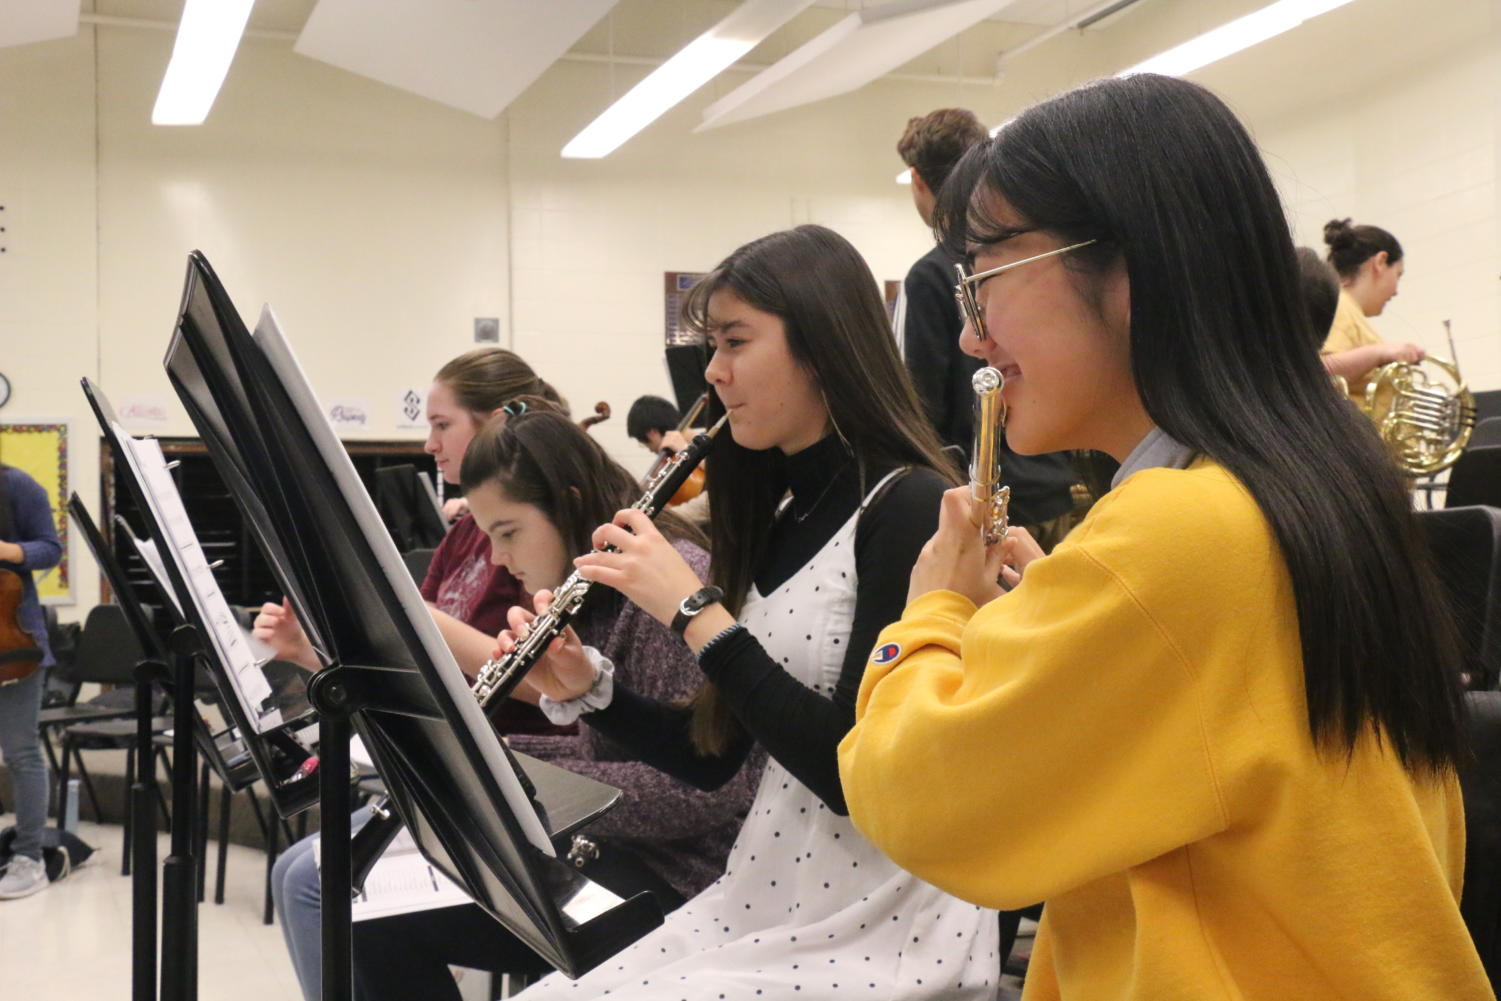 SPECTACULAR+SENIORS%3A+Flutist+and+senior+Jaehee+Kim+and+oboist+and+senior+Alyssa+Smith+warm+up+during+SRT+on+Nov.+1.+Kim+and+Smith+rehearsed+for+Holiday+Spectacular+2019%3A+%22Senses+of+the+Season%22+that+will+take+place+on+Dec.+4+to+8.